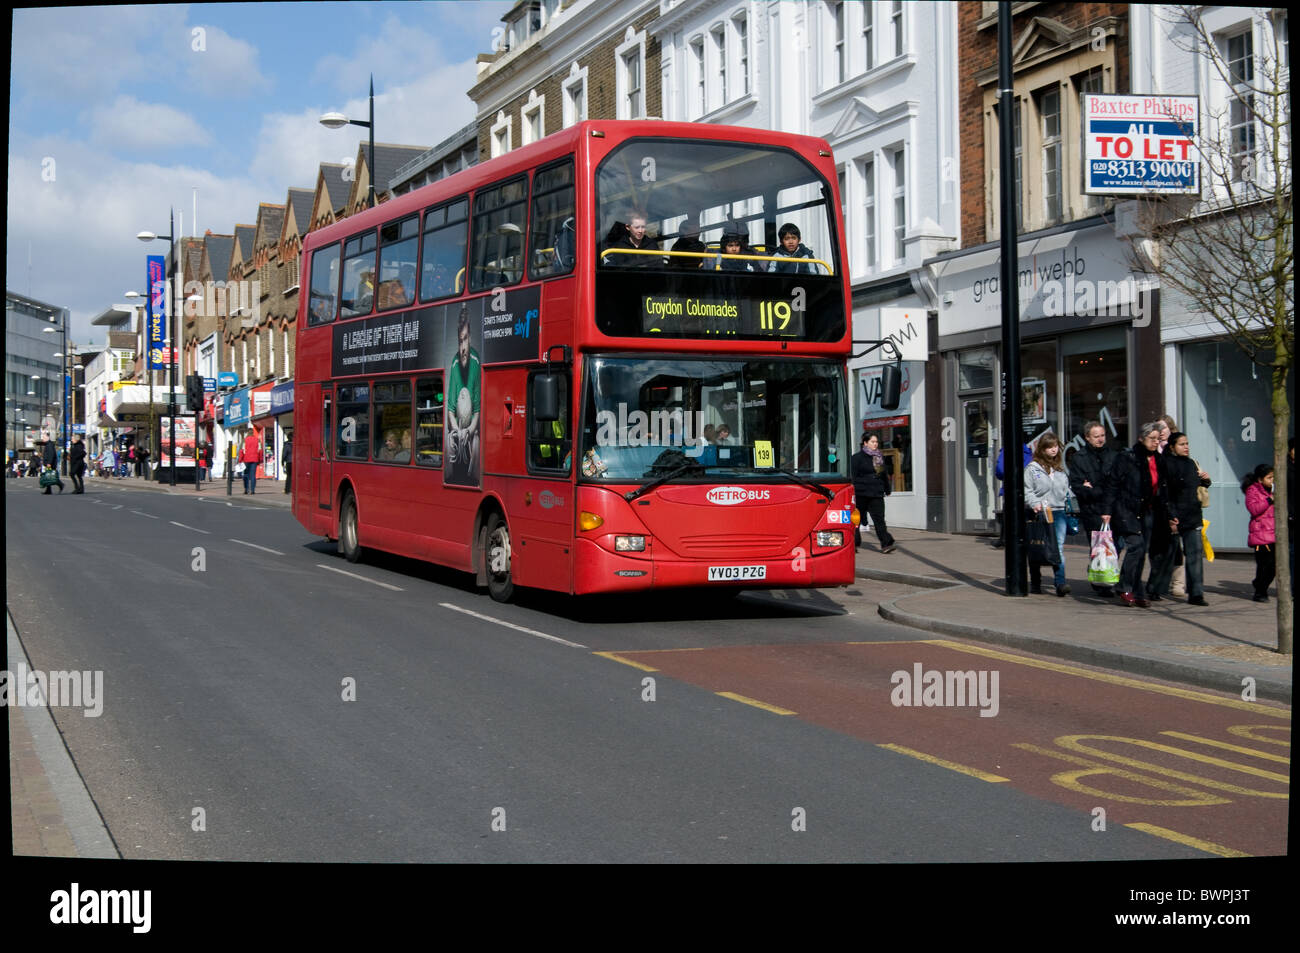 A red London double bus operated by Metrobus, part of the Go-Ahead group, travels along Bromley High Street - Stock Image